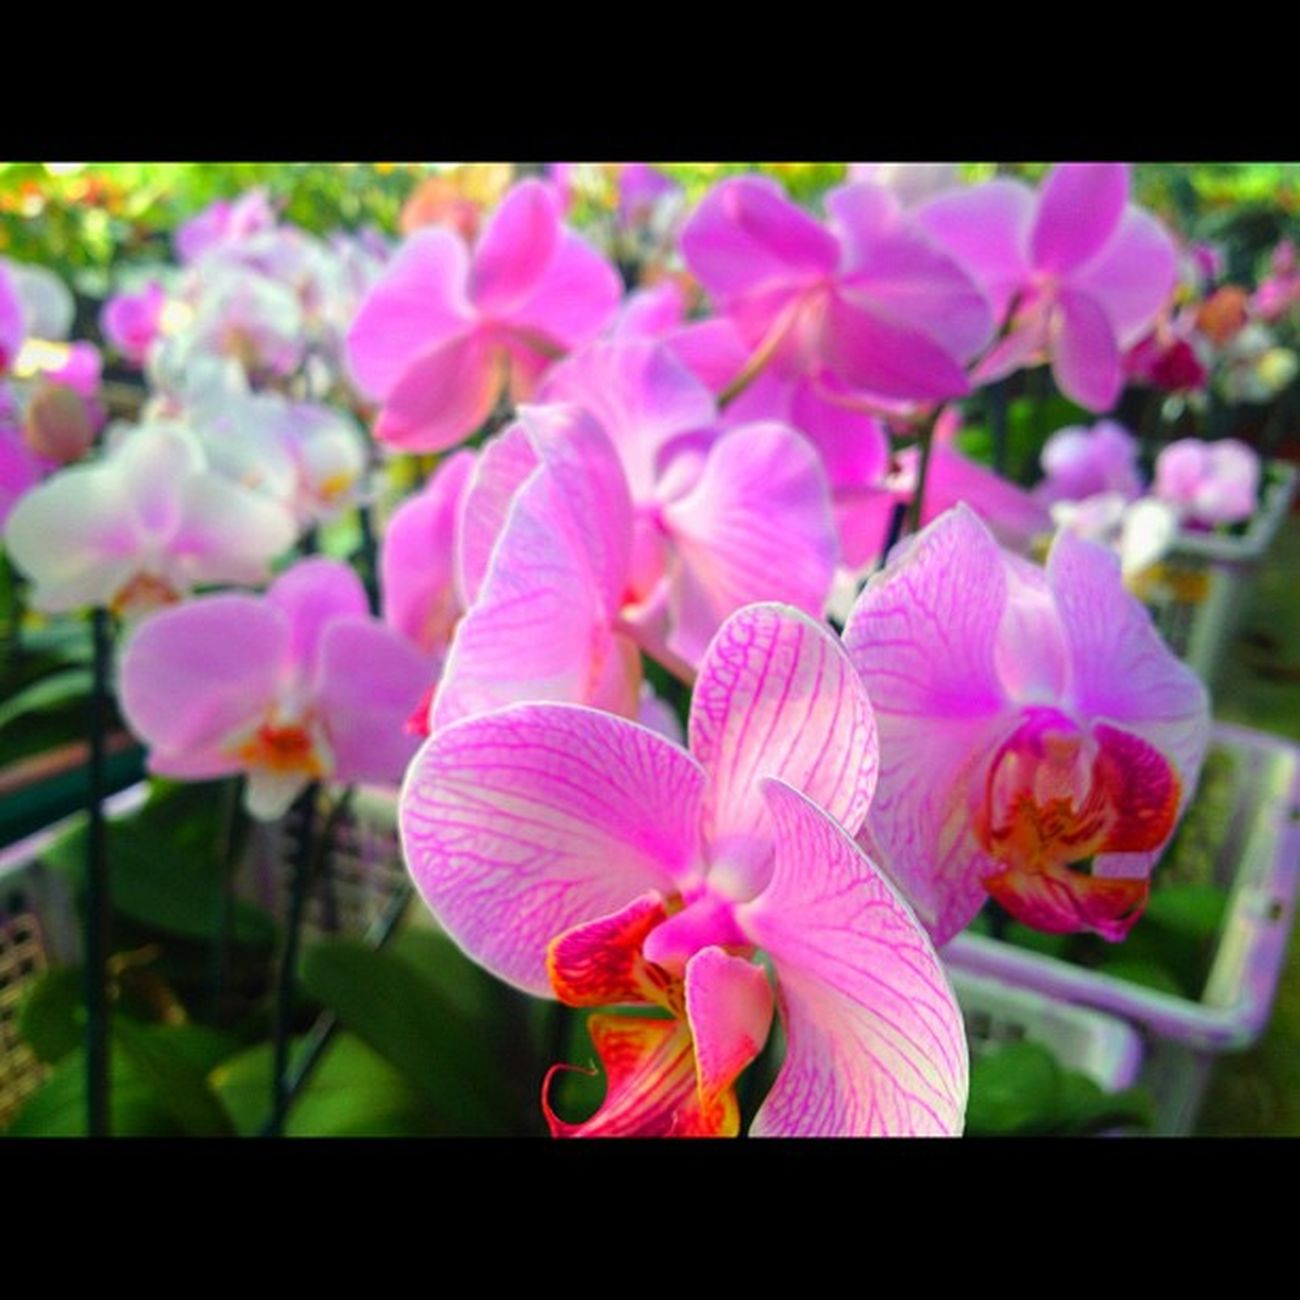 Flower Orchid Pink Nature Bangkok Thailand Beautiful Perfect Instargram Instarpic Picofday